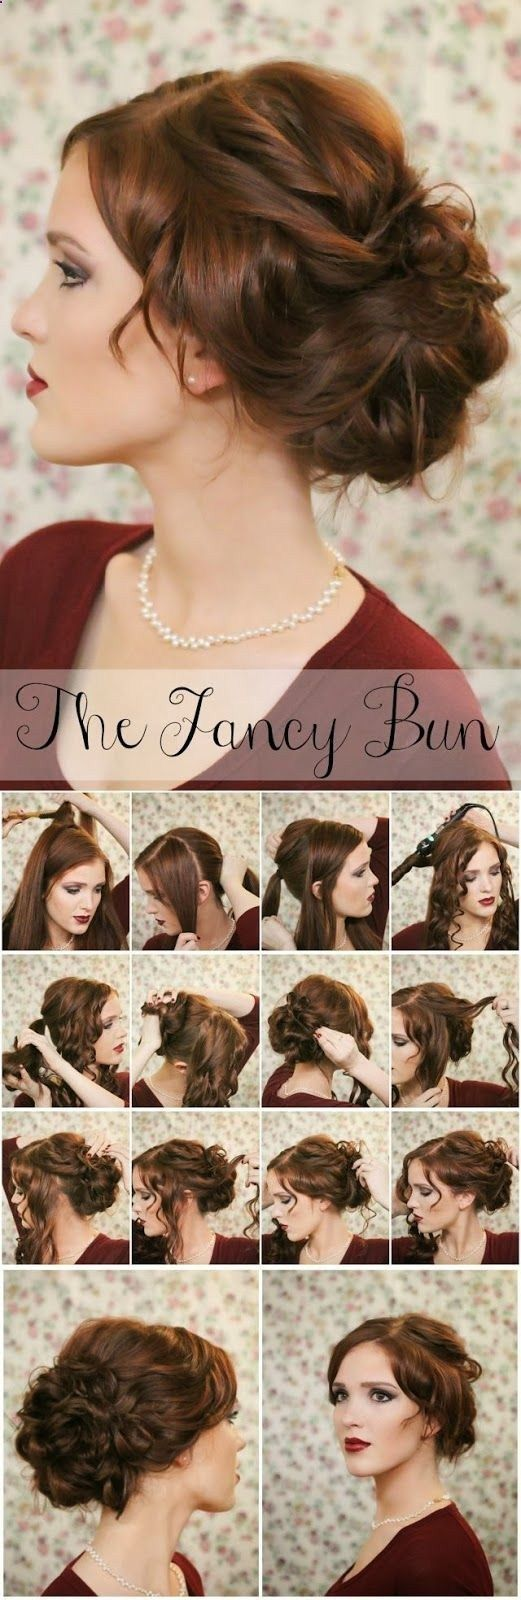 10 pretty and chic updos for medium-length hair 10 pretty and chic